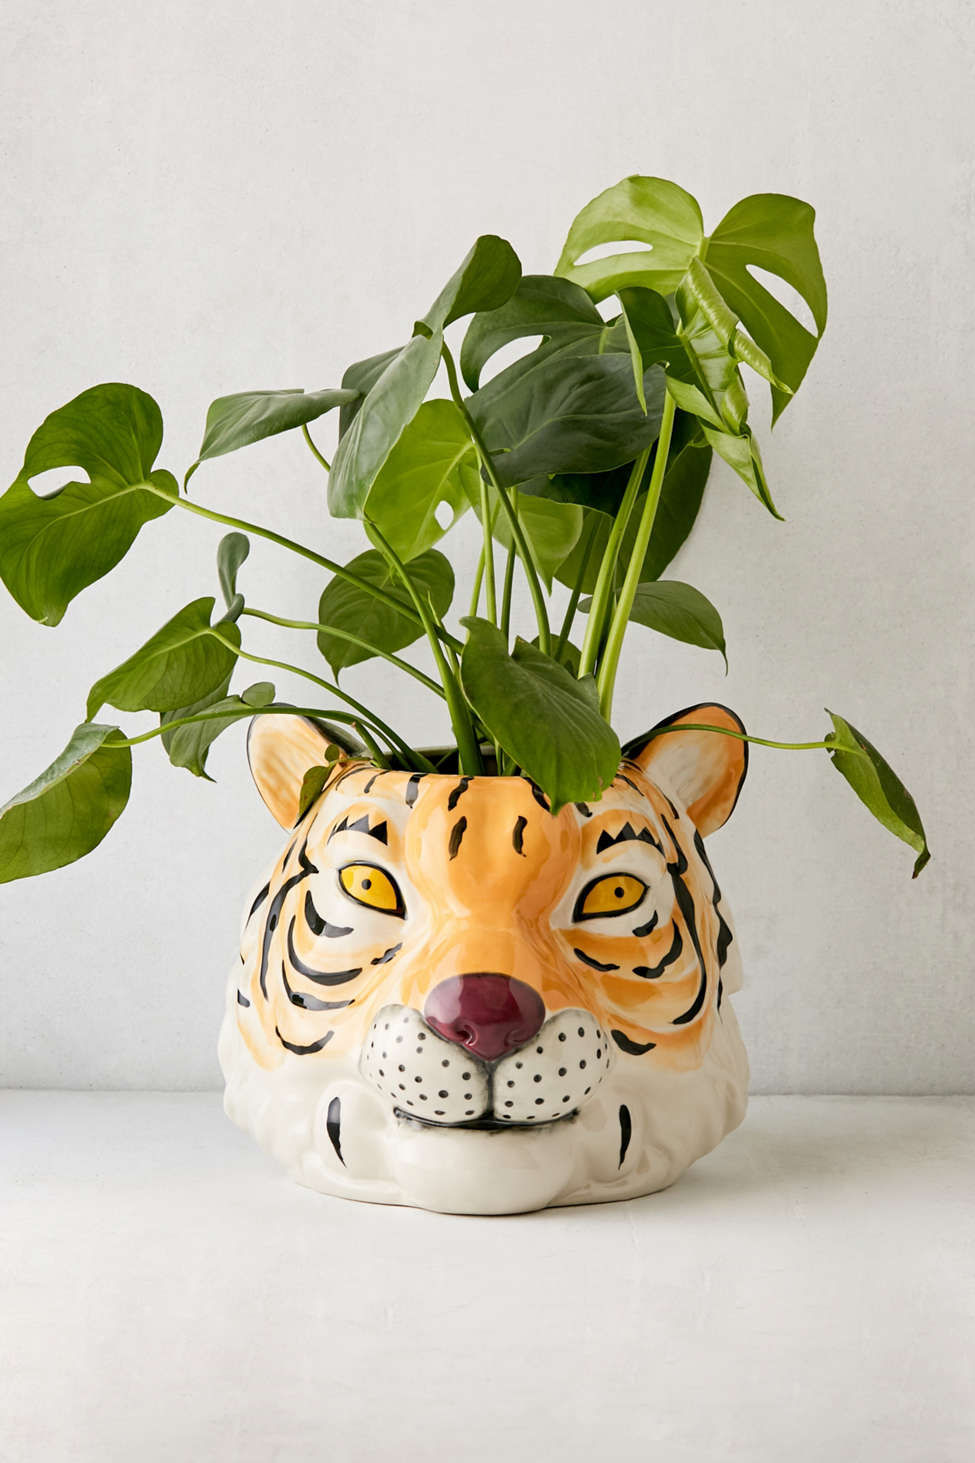 Slide View: 2: Large Tiger Planter